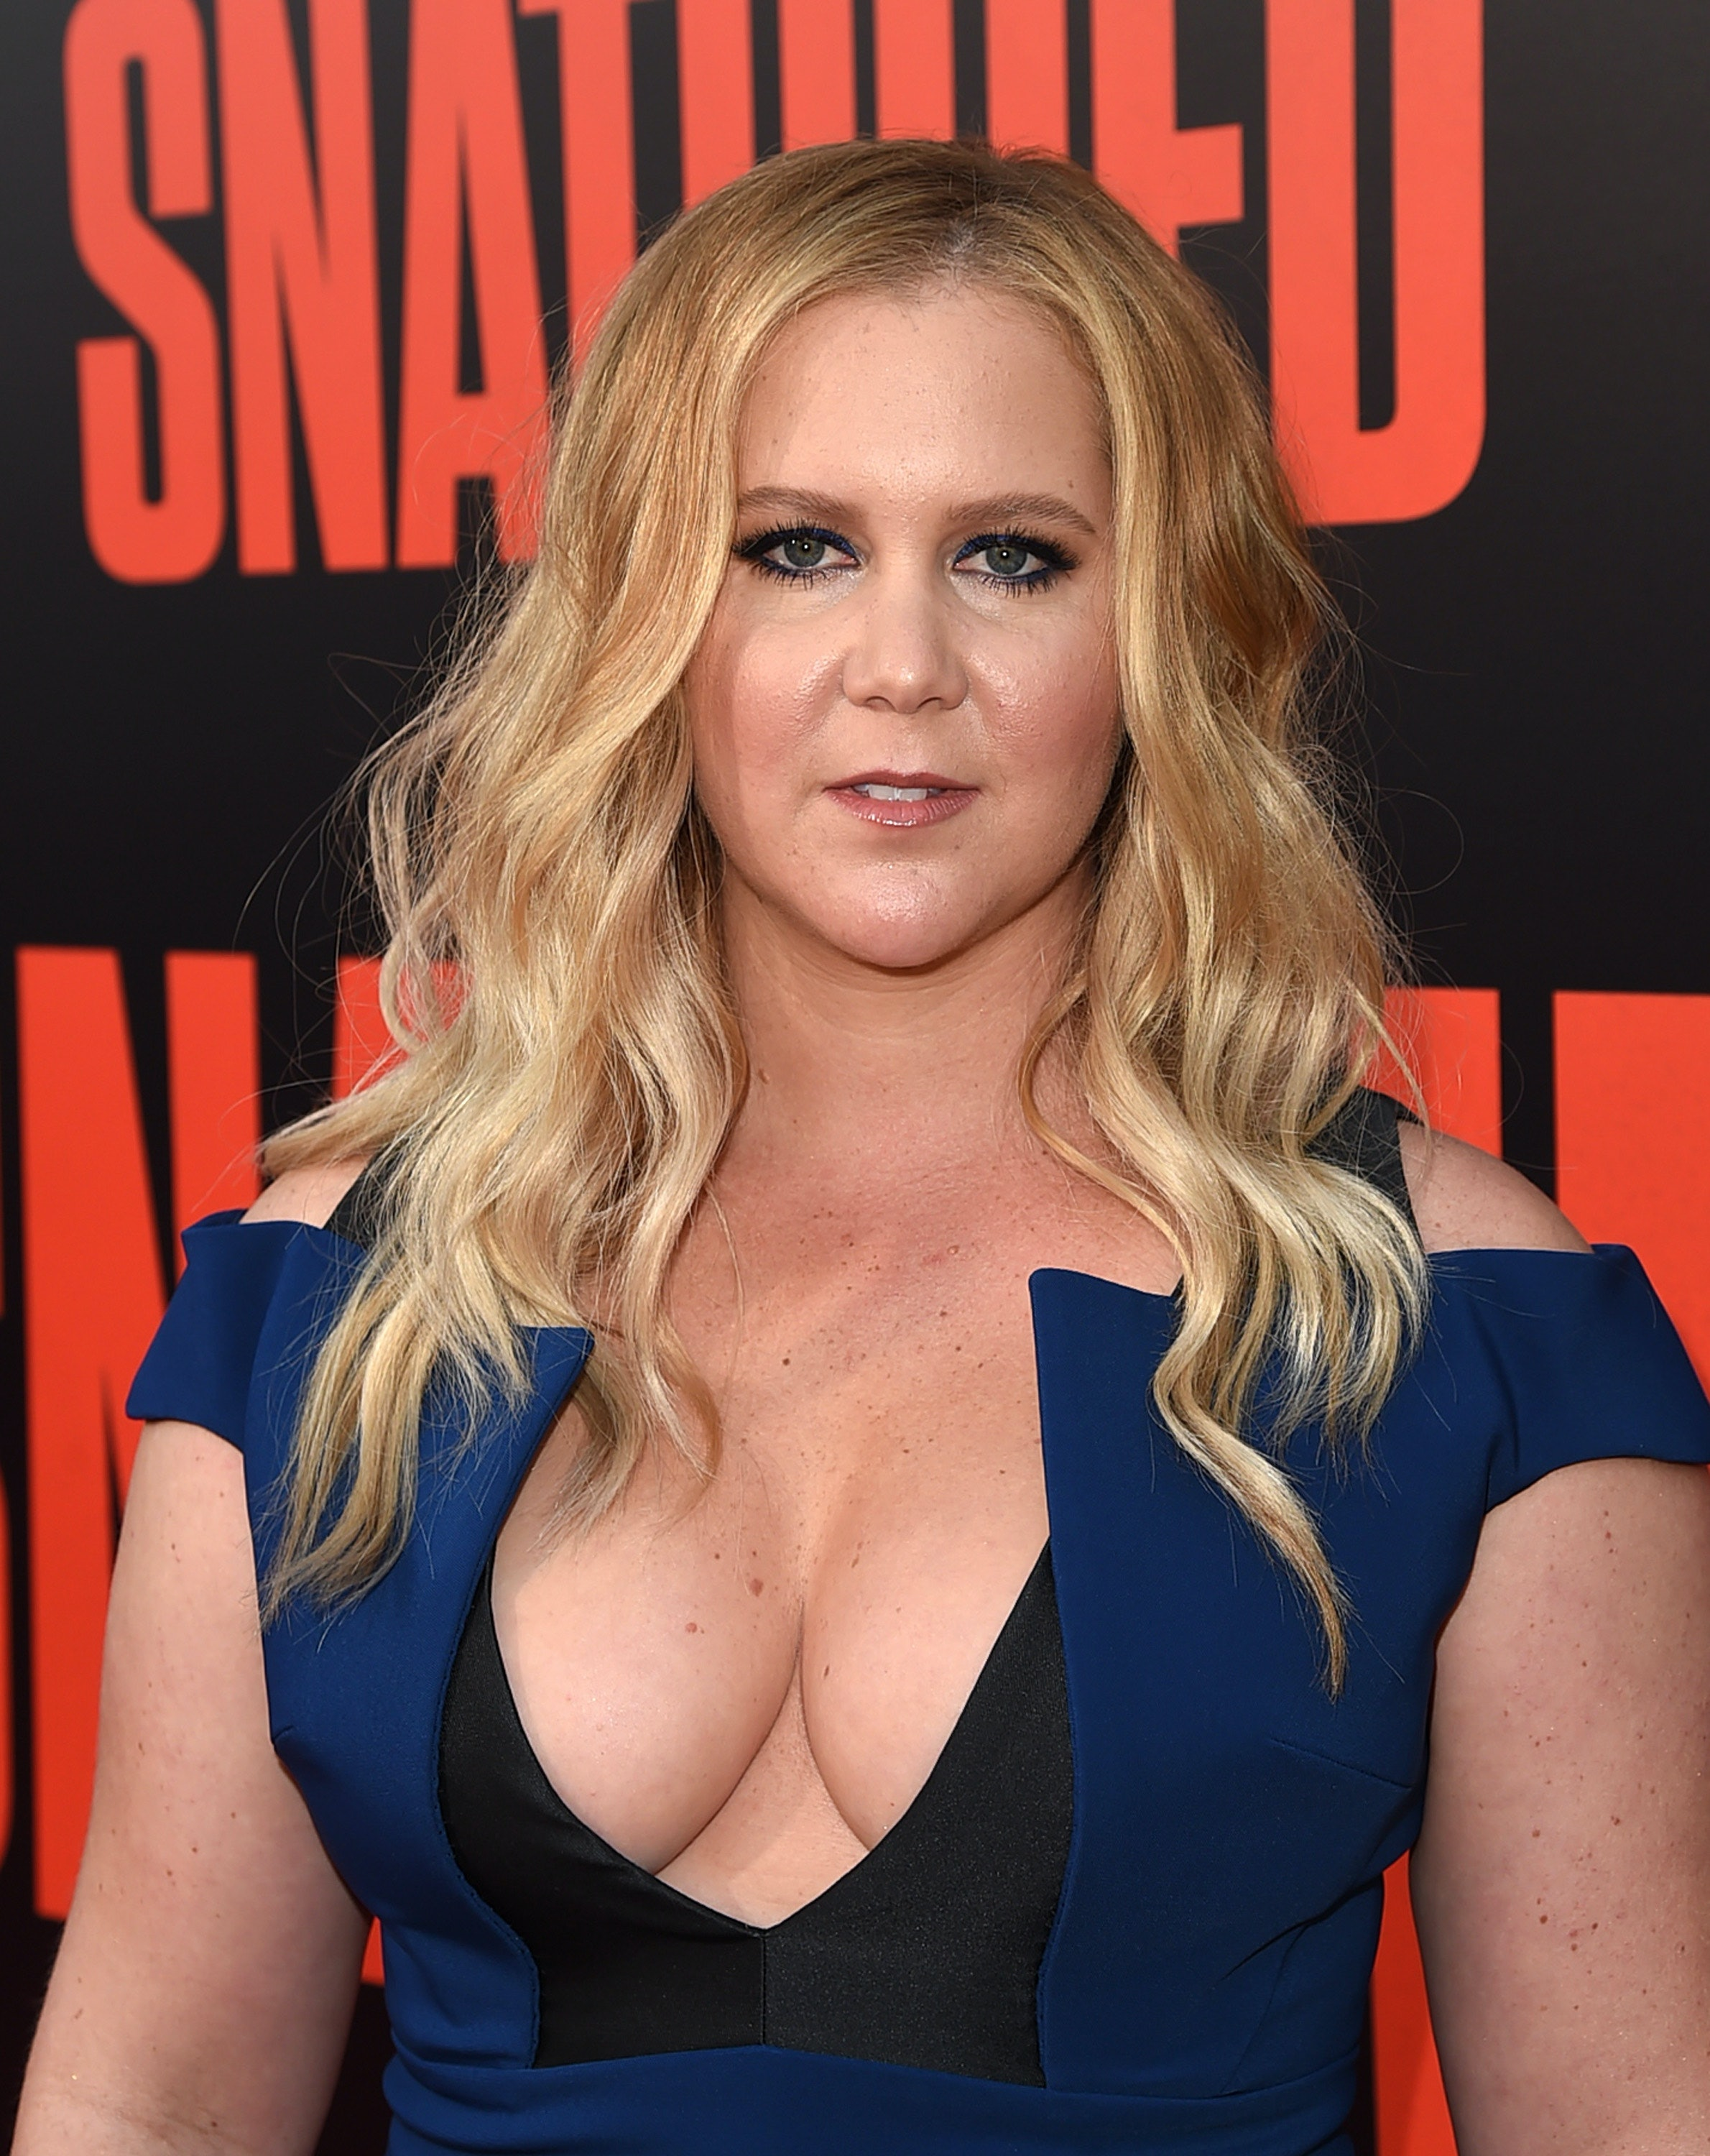 Amy Schumer: I don't 'deserve equal pay' with Chris Rock, Dave Chappelle